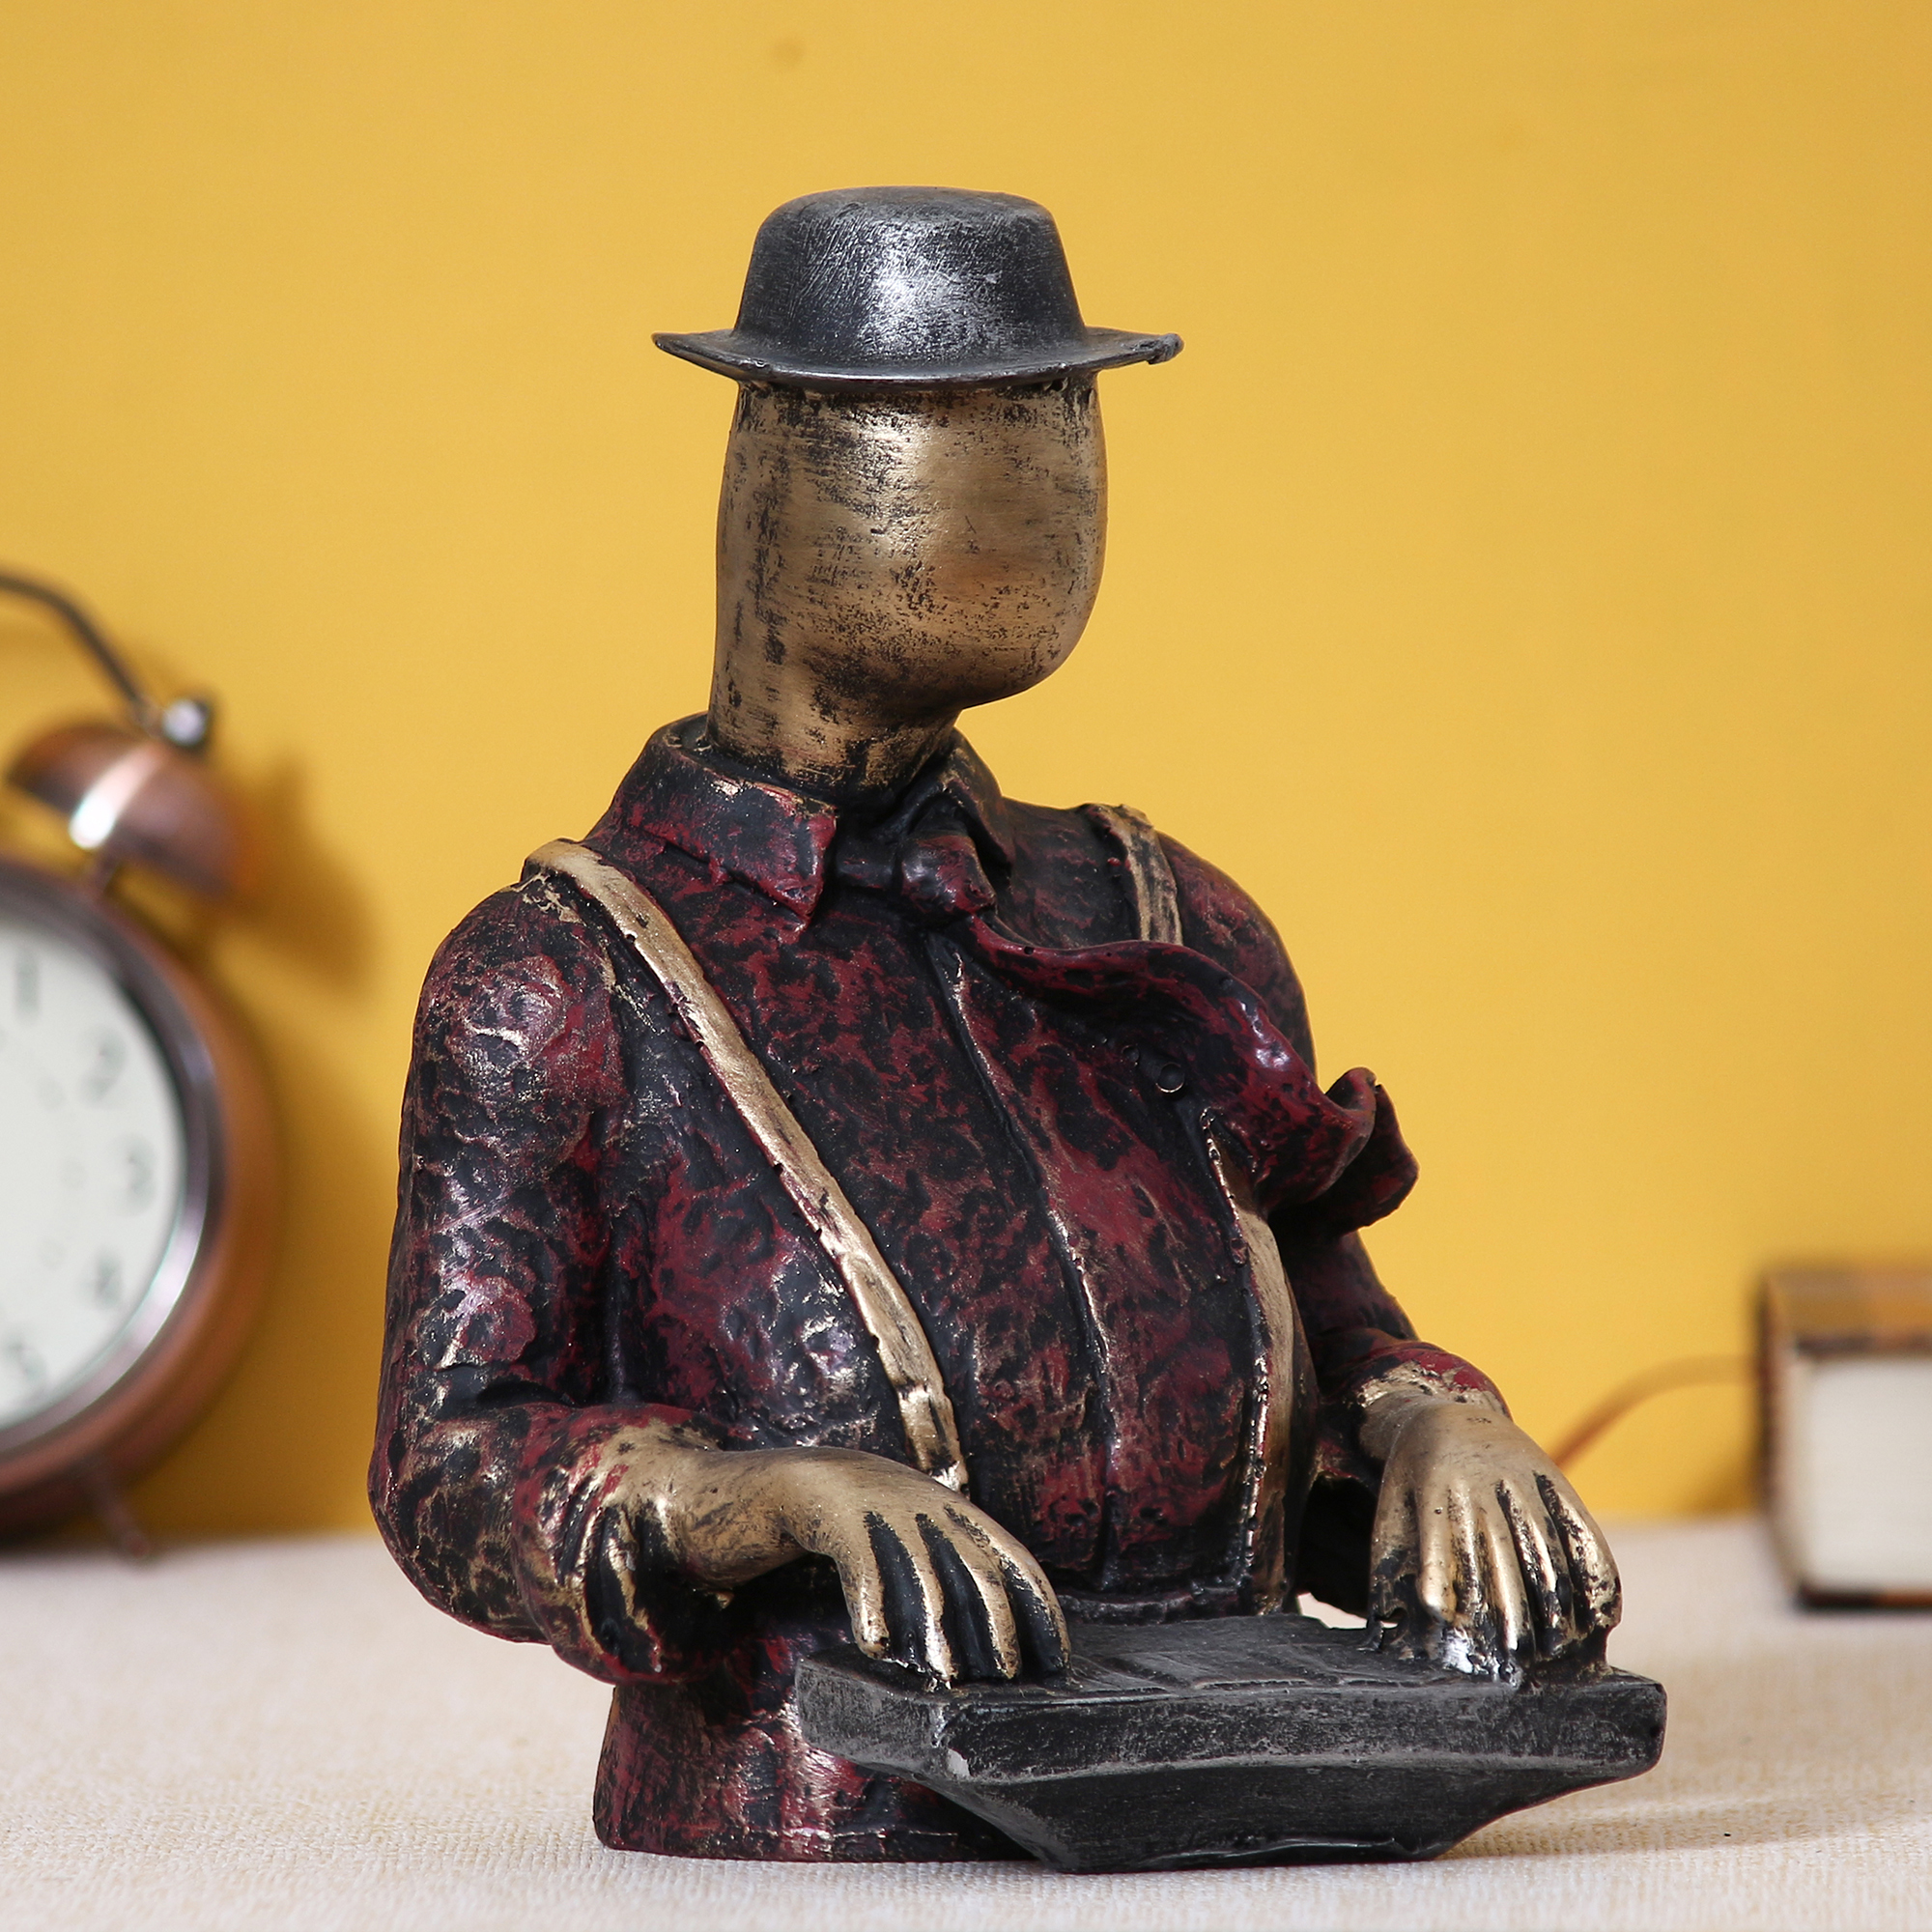 Man with Hat playing Piano Decorative Statue Indian Home Decor